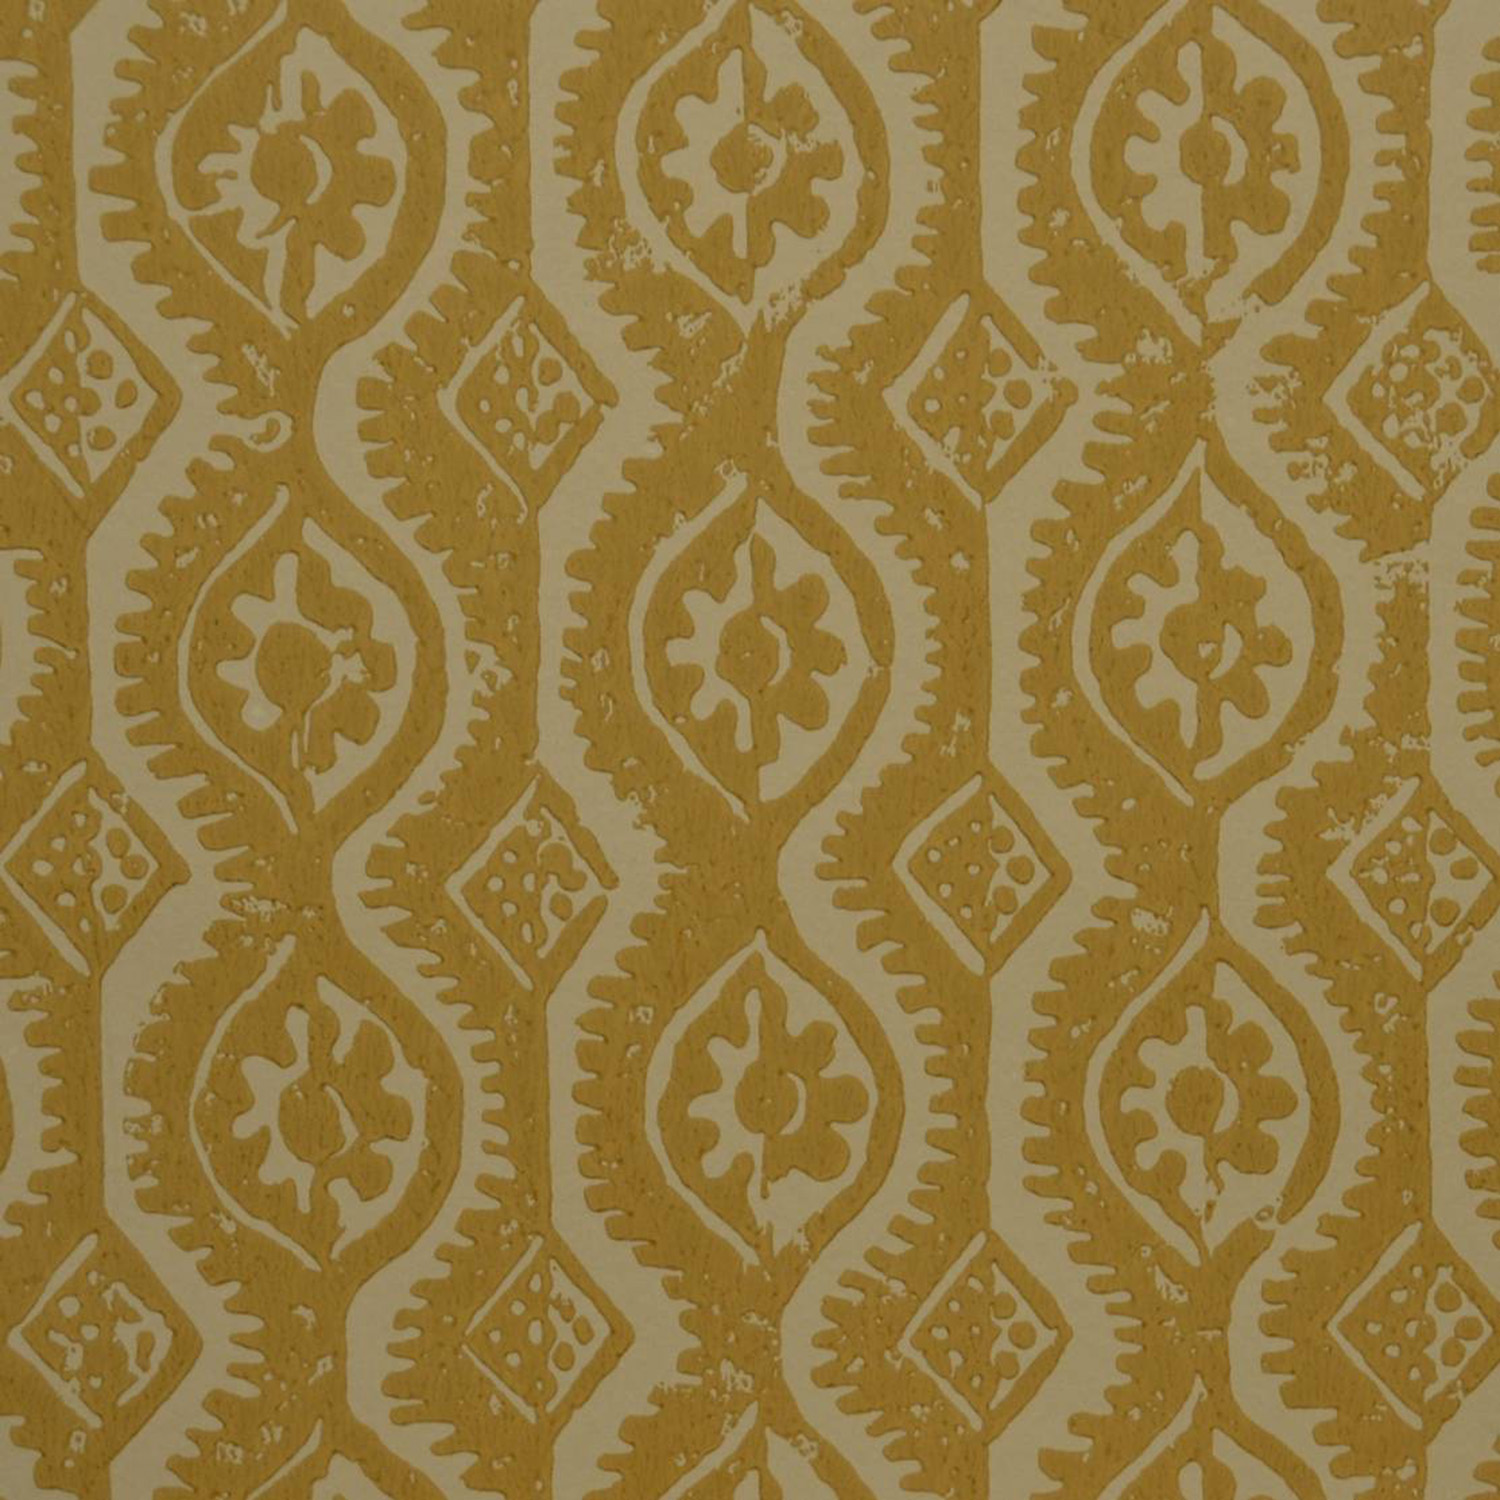 <p><strong>SMALL DAMASK</strong>ochre 880-10<a href=/the-peggy-angus-collection/small-damask-ochre-880-10>More →</a></p>